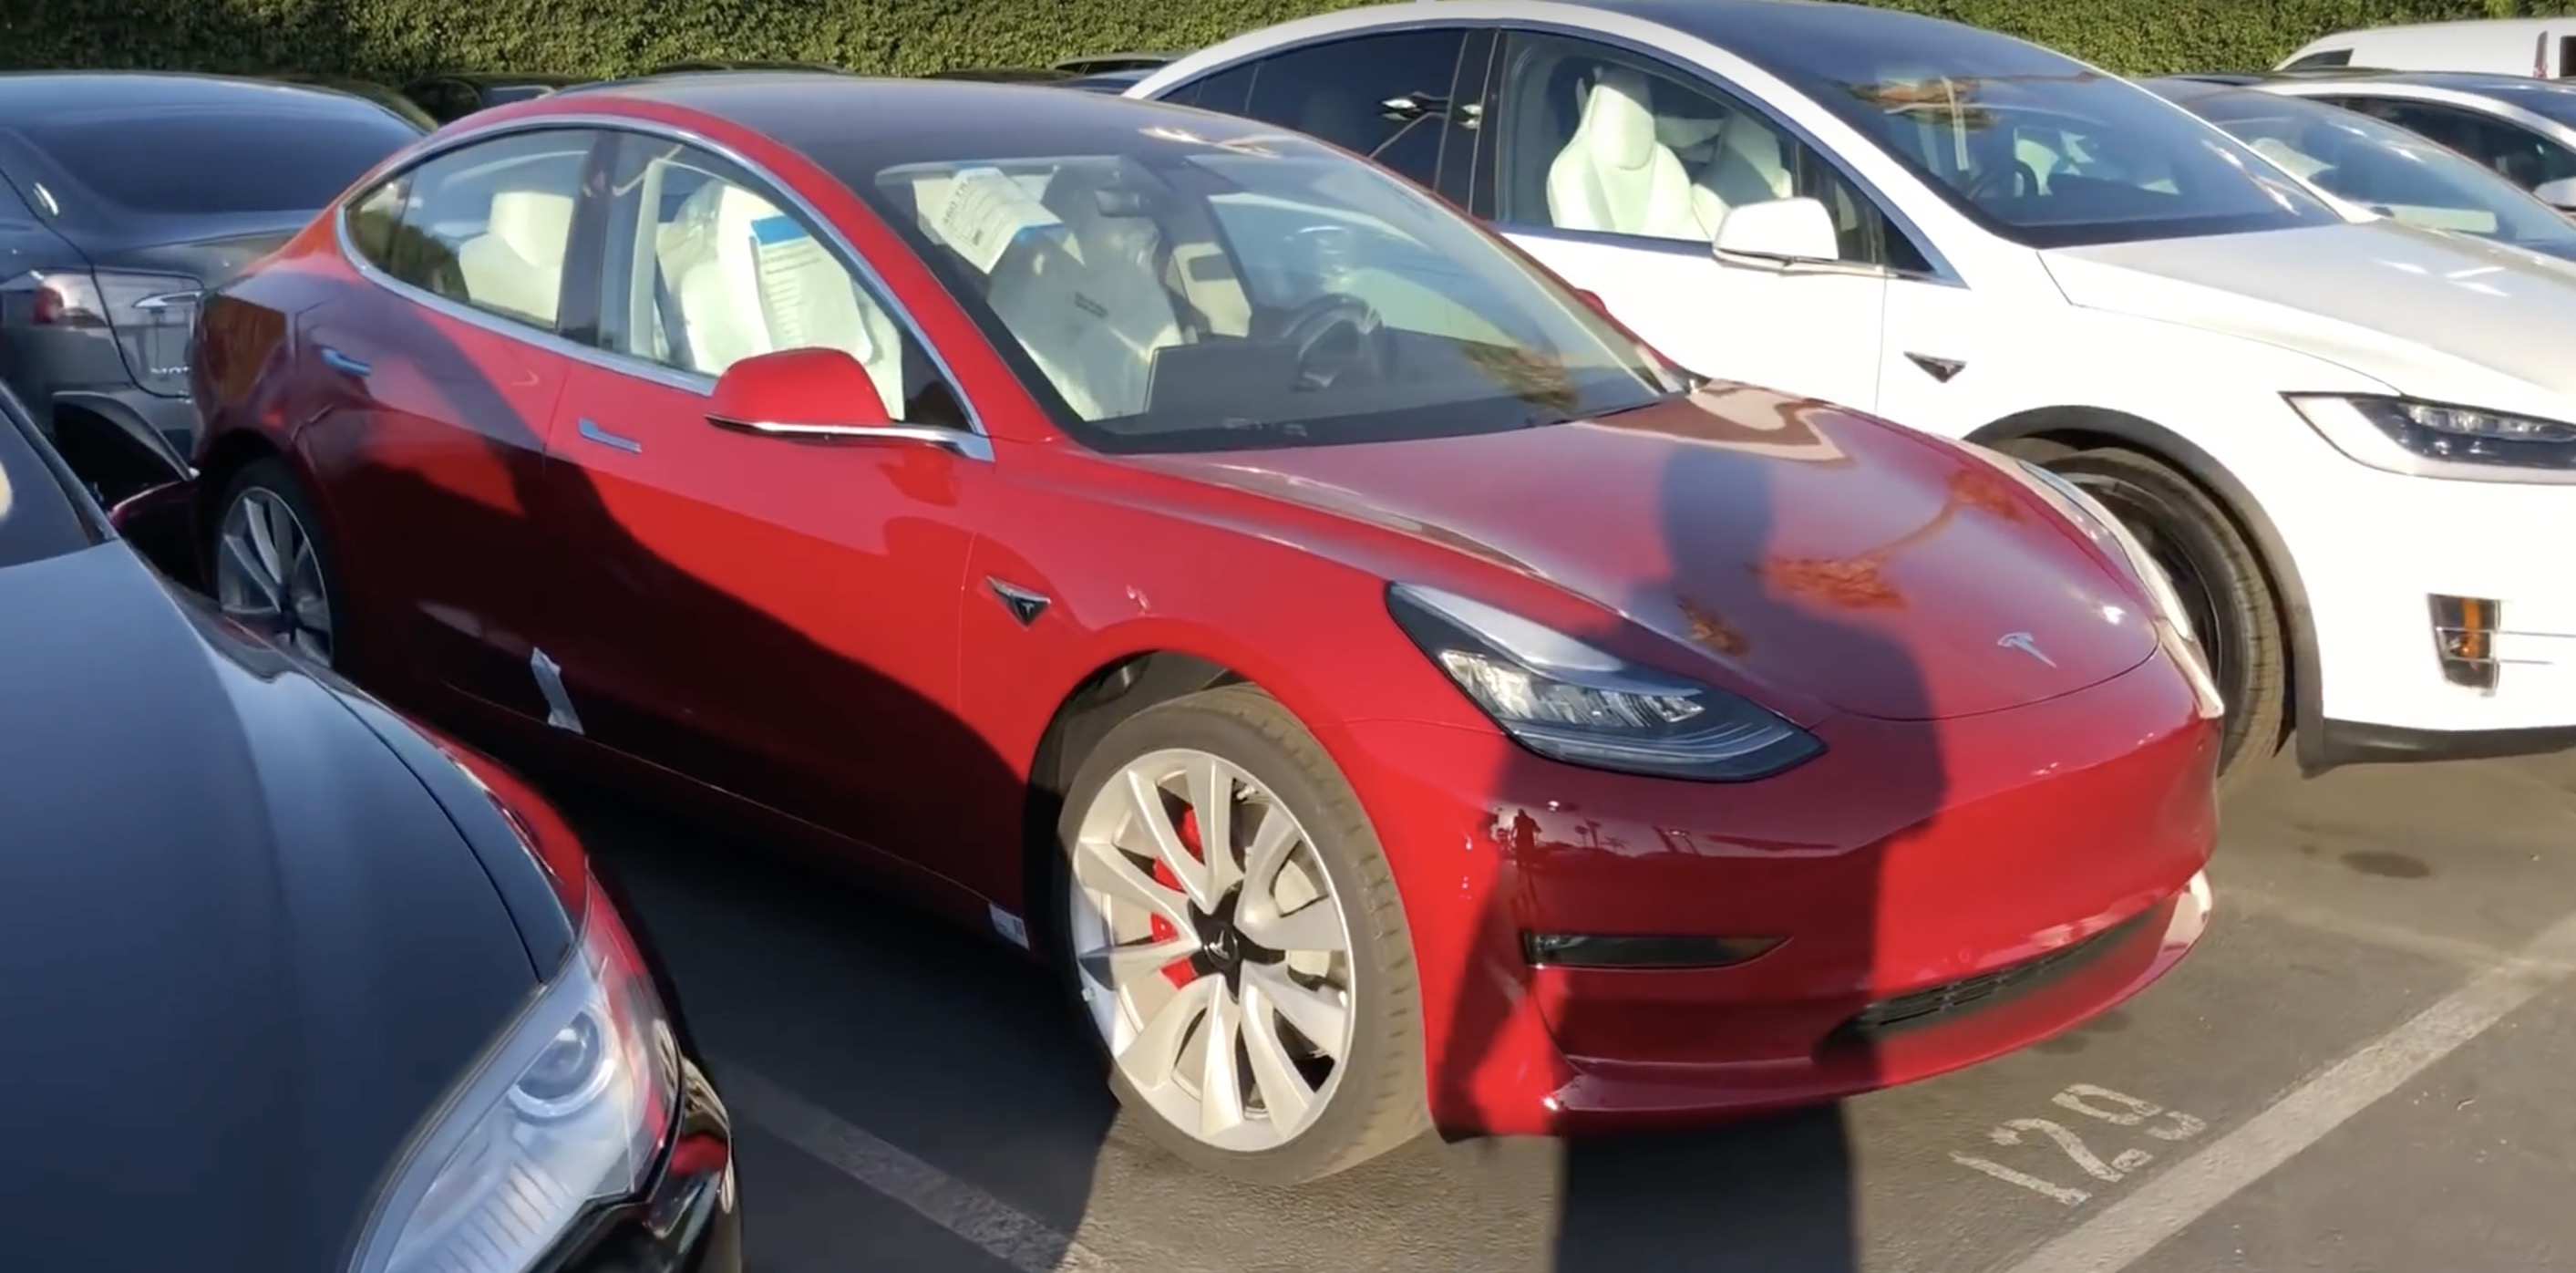 0 60 Times Bmw >> Tesla Model 3 Performance 0 60 Time Could Improve To Under